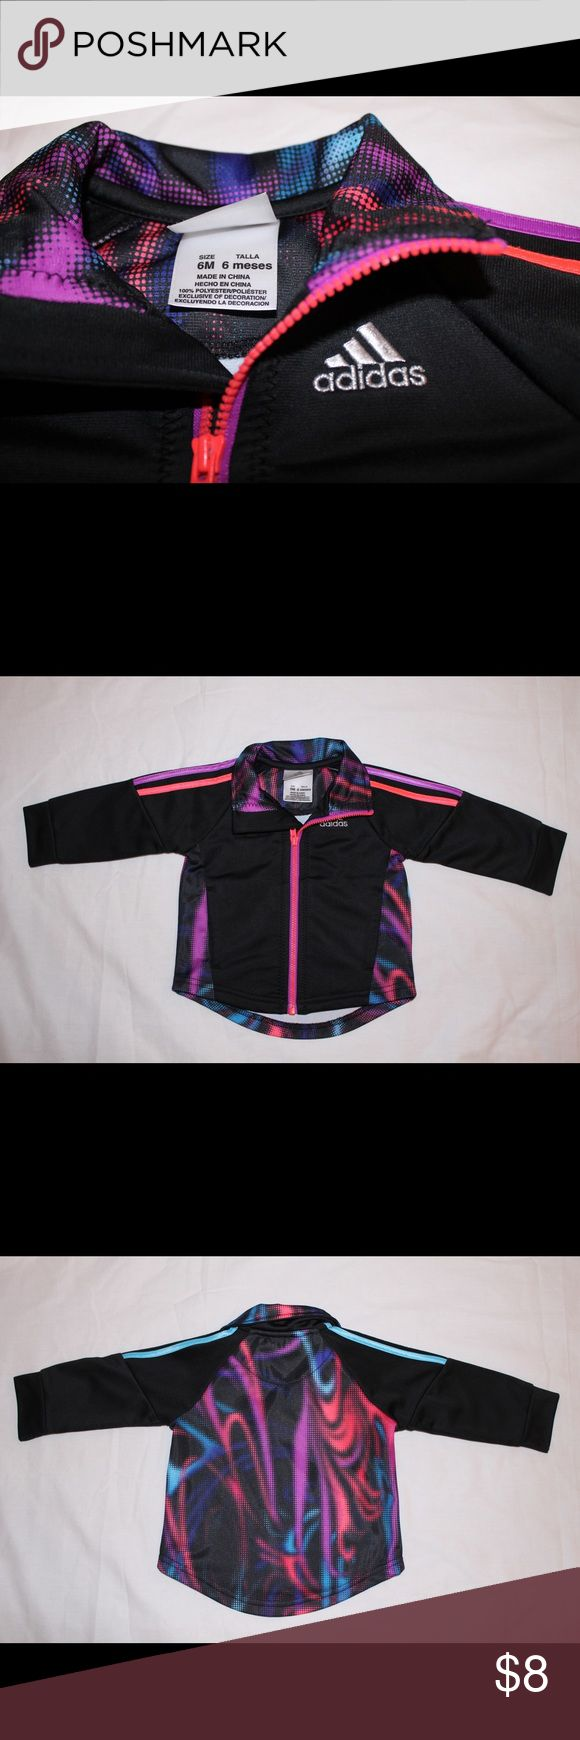 Colorful Adidas Jacket sz 6m Infant Adidas Jacket size 6 months Adidas Jackets & Coats